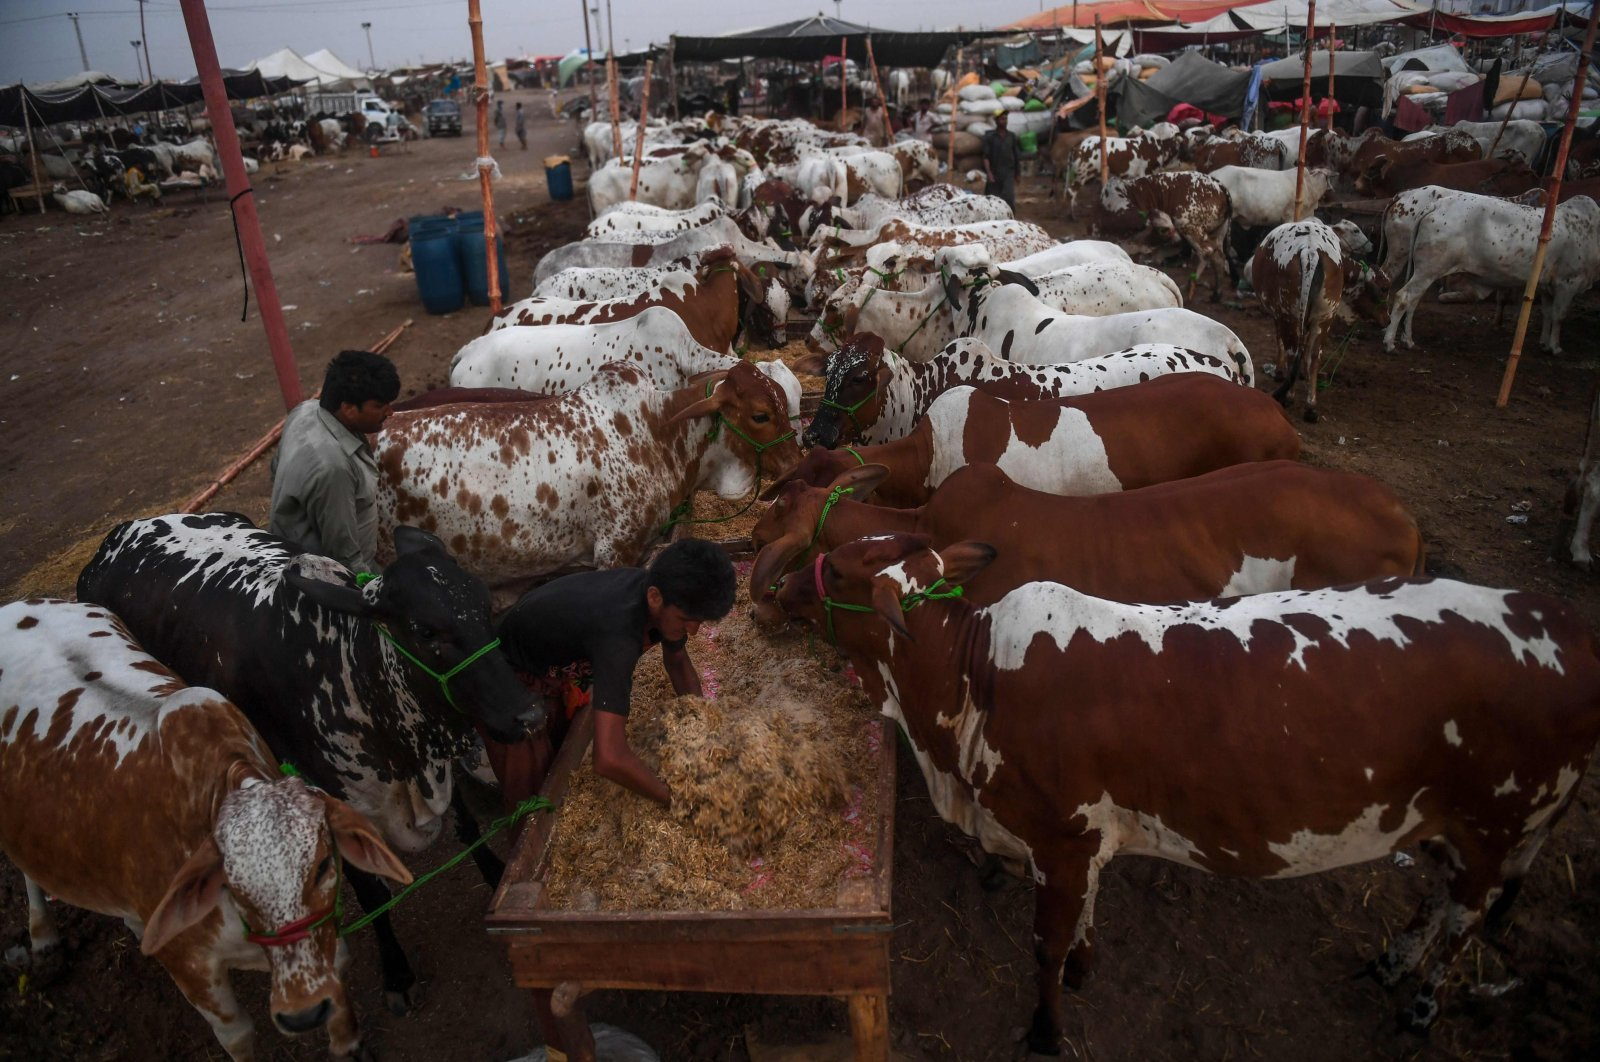 A trader feeds cows at a cattle market set up for the upcoming Muslim Eid al-Adha festival or the Festival of Sacrifice in Karachi, July 10, 2020. (AFP Photo)